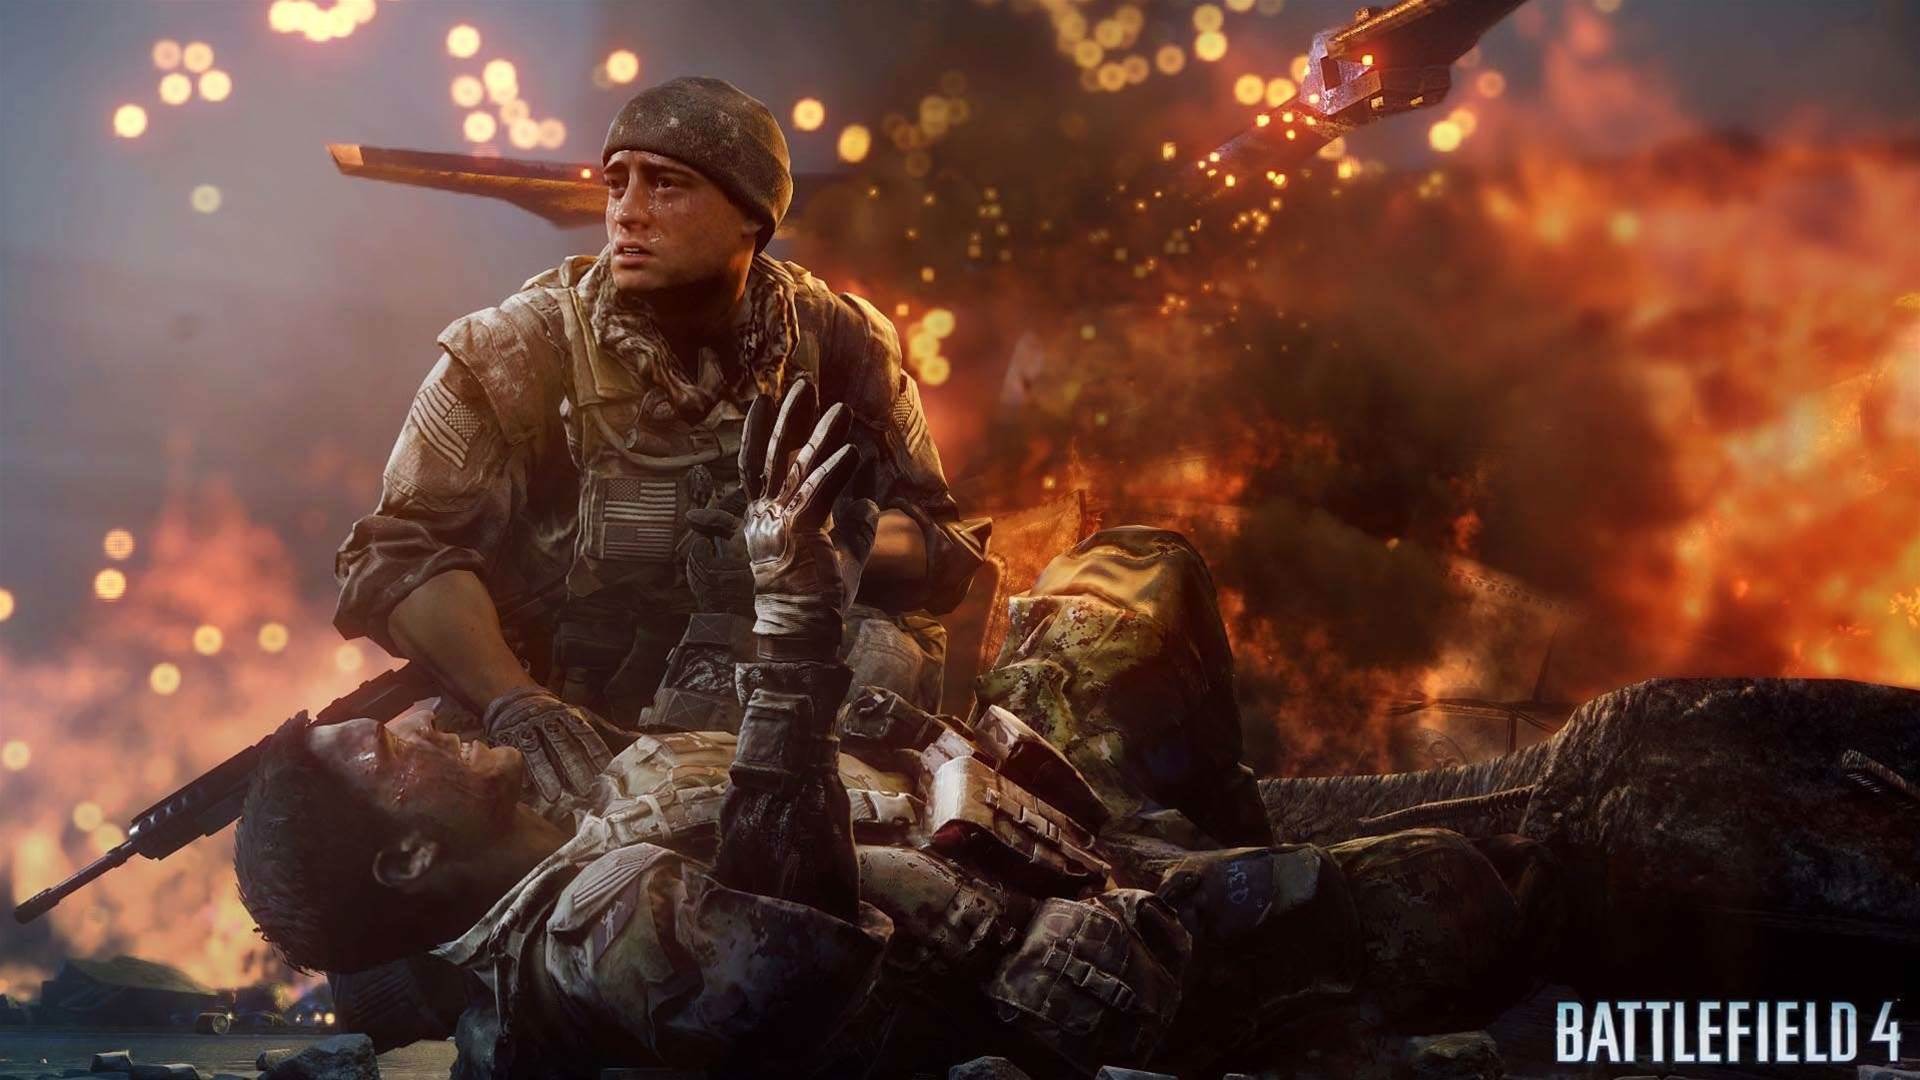 Take a look inside Frostbite 3, the engine powering Battlefield 4